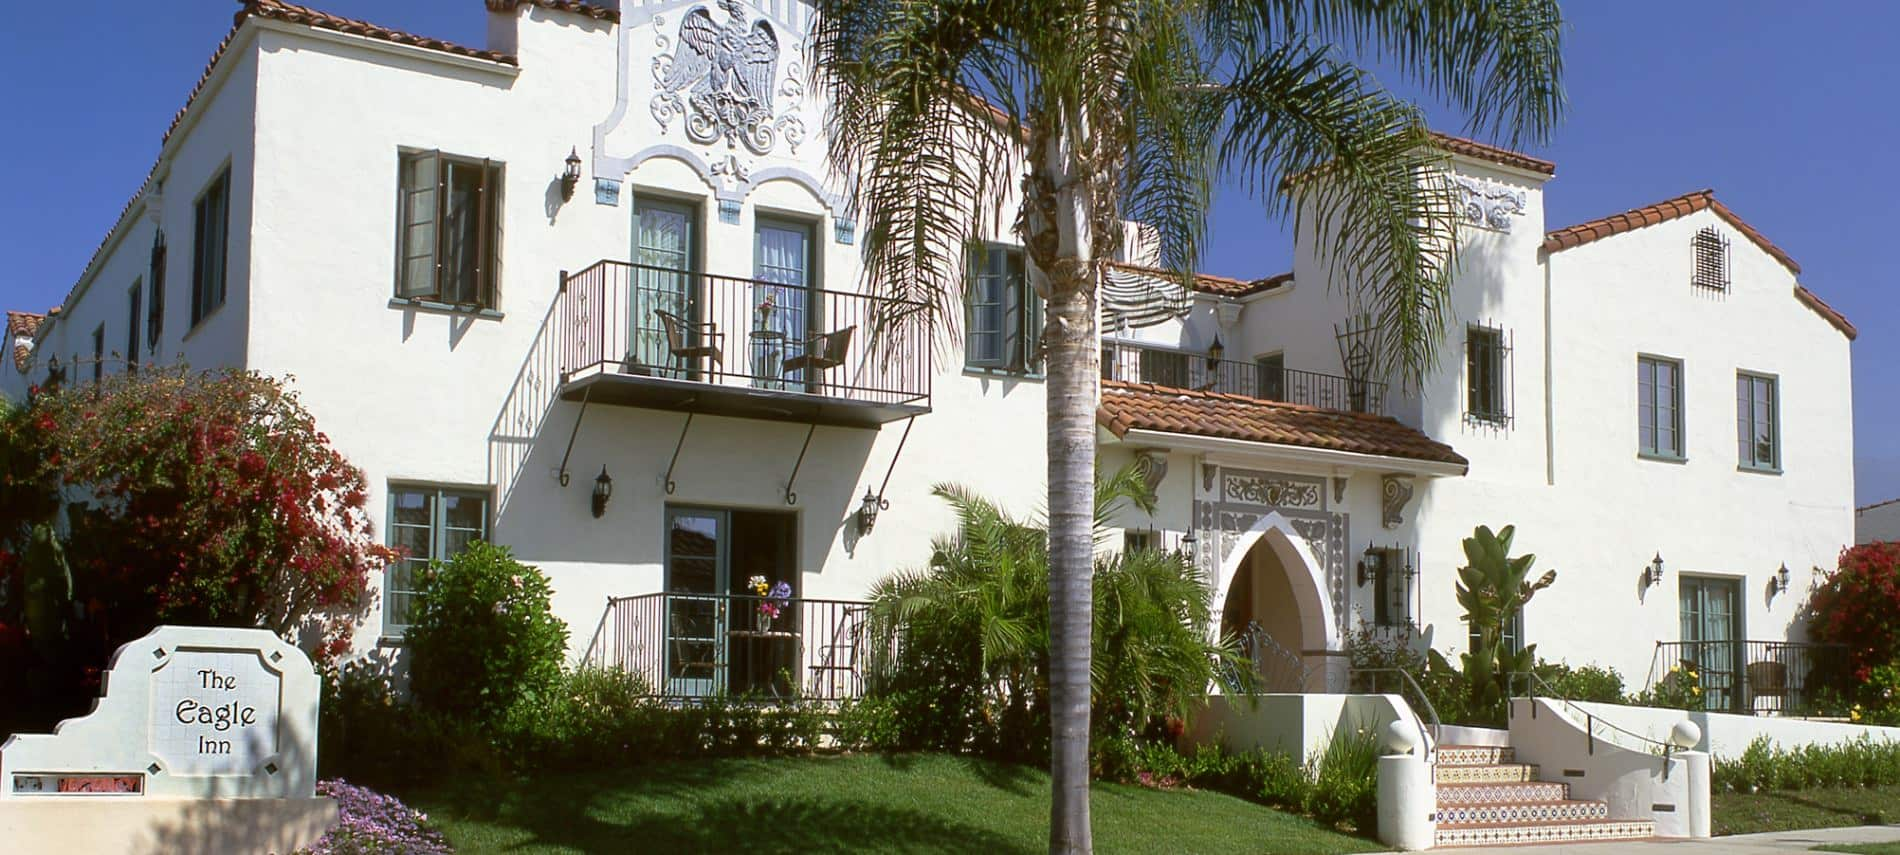 Exterior view of Spanish-style Eagle Inn with palm trees and blue skies